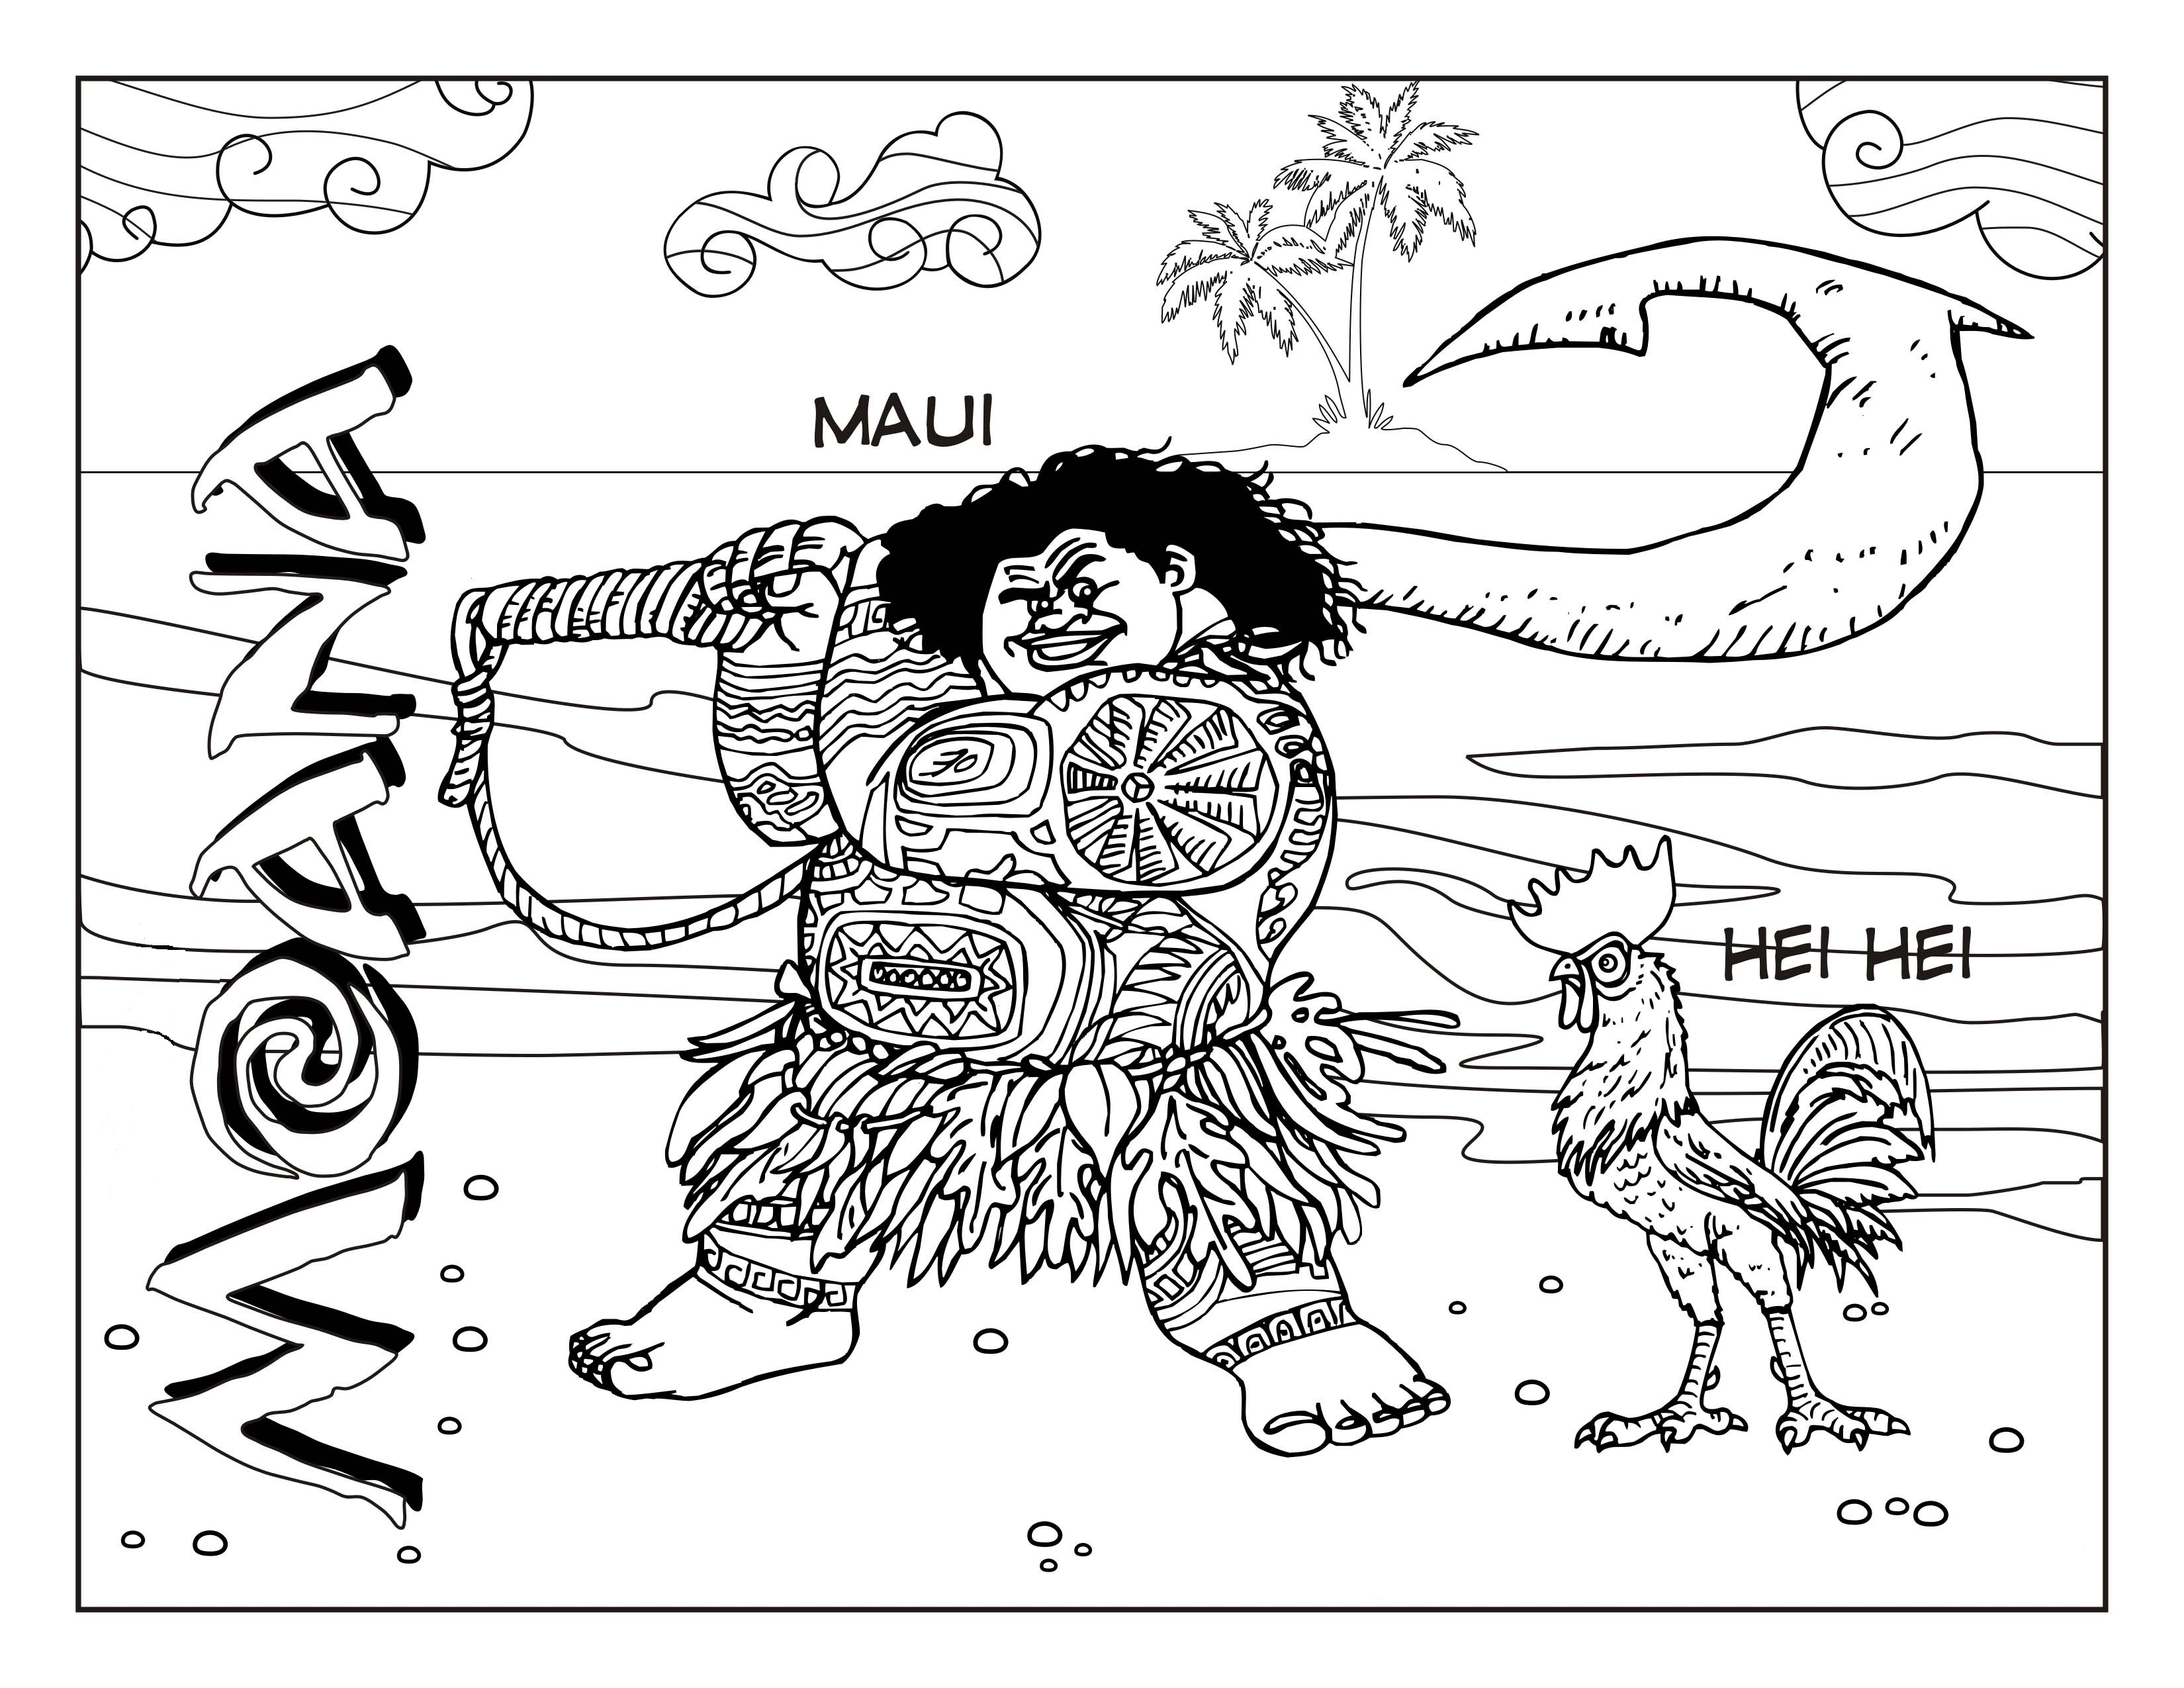 Moana coloring pages to download